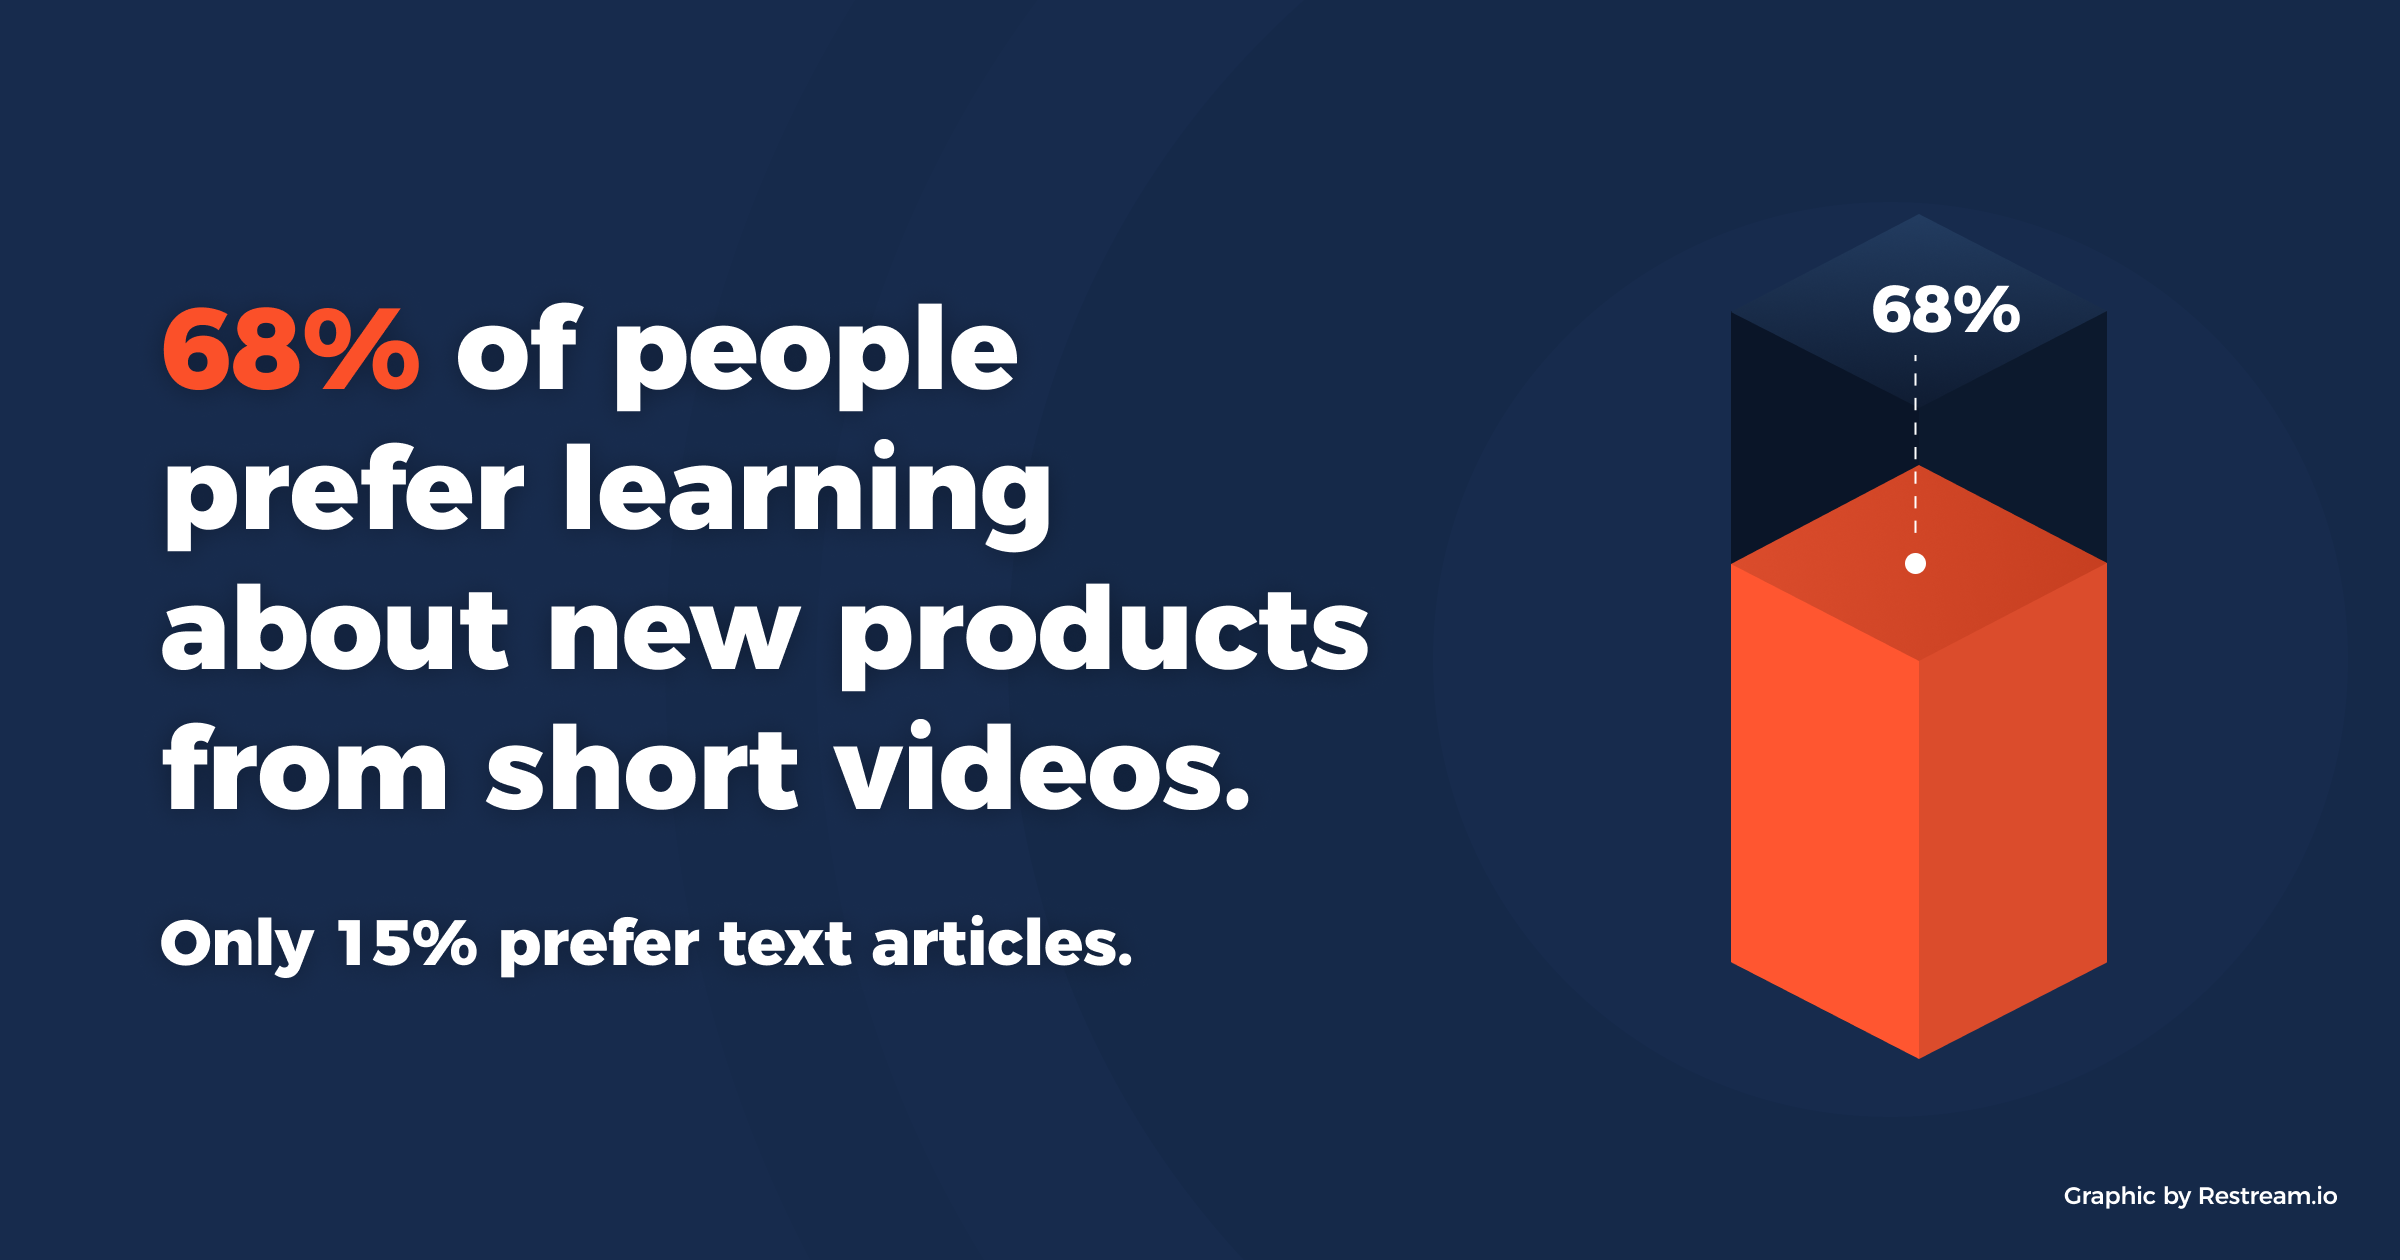 68% of people prefer learning about new products from short videos. Only 15% prefer text articles.